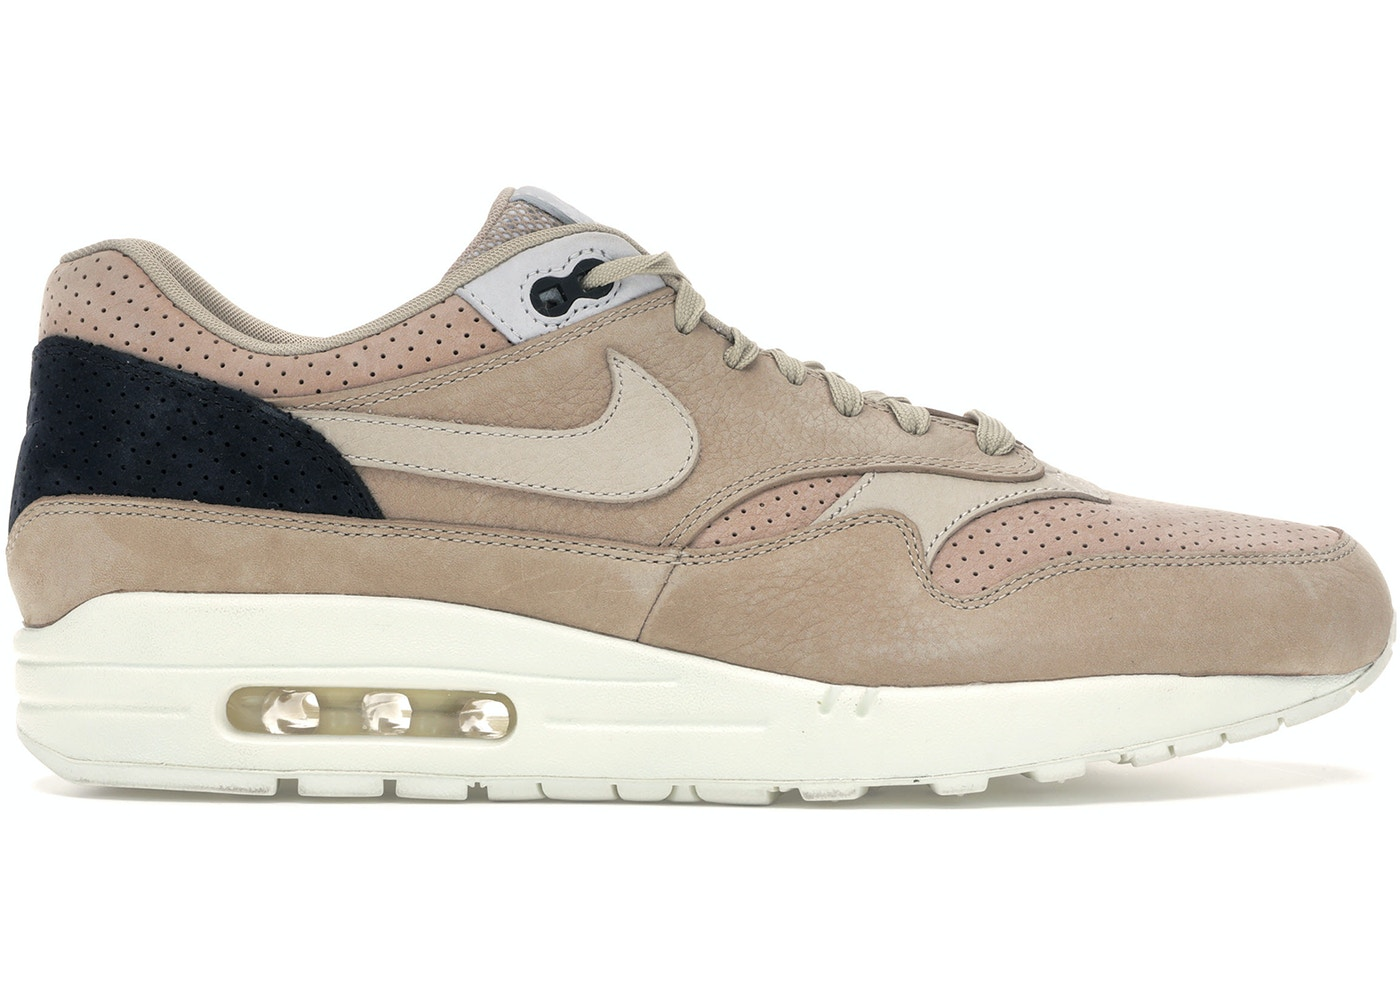 a353d633 Air Max 1 Pinnacle Mushroom - 859554-200